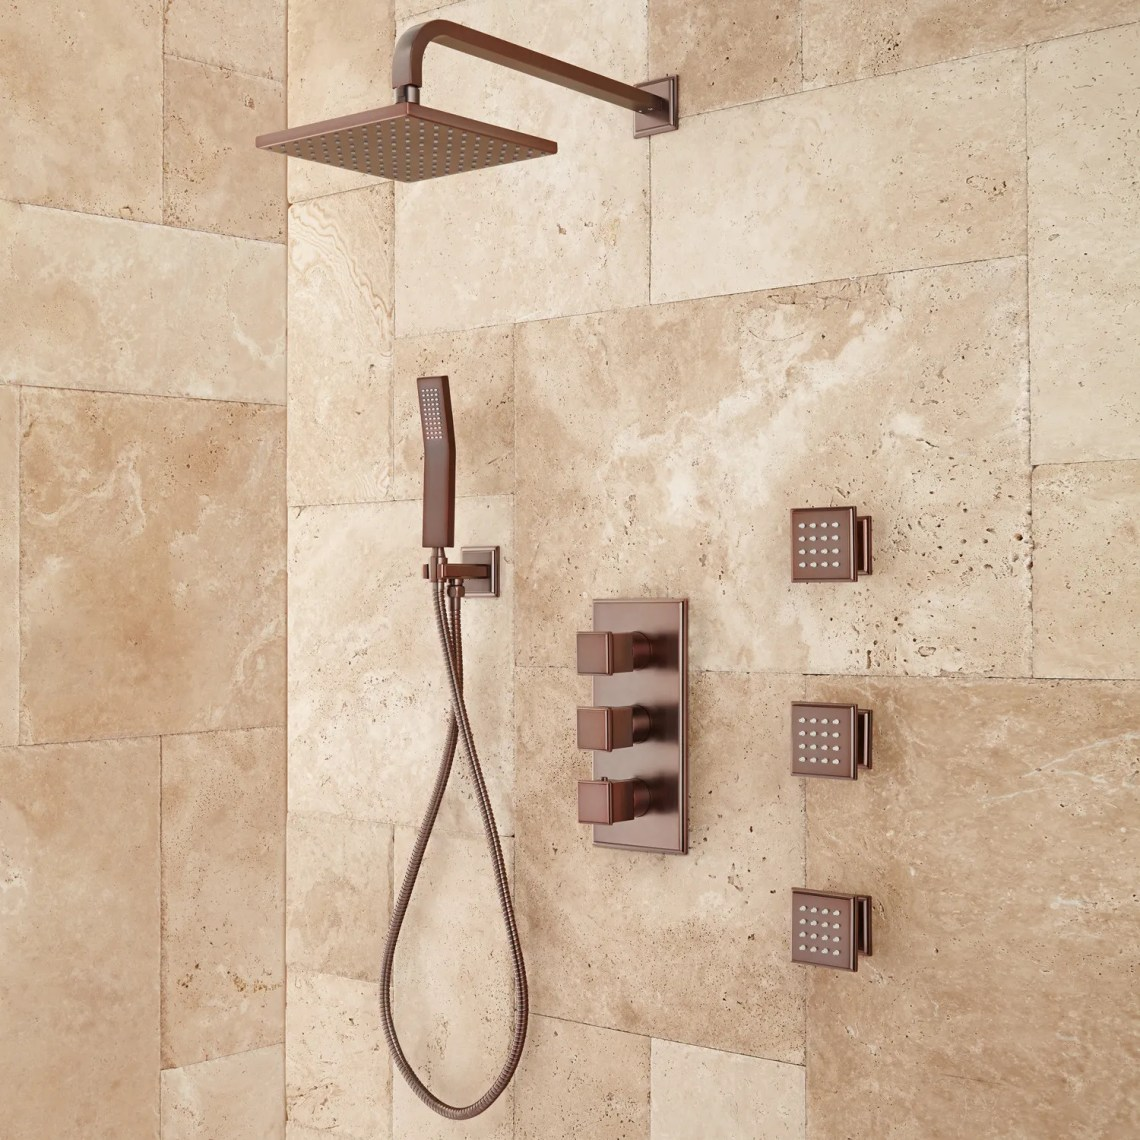 Image Result For Bathroom Shower Heads And Faucets